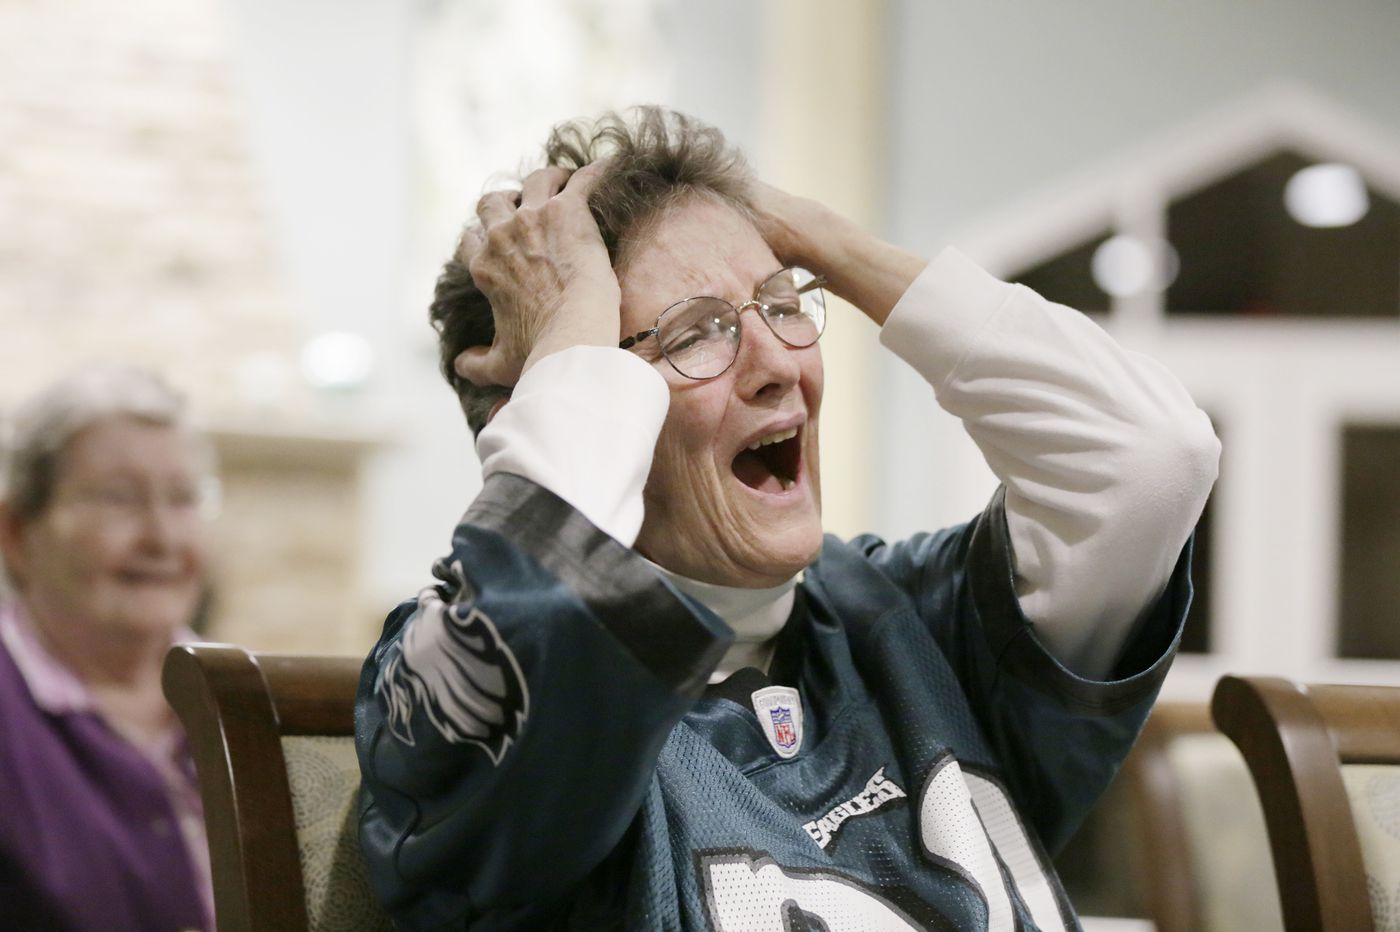 Sisters vs. Saints: Only one side's prayers were really answered in the Eagles' loss to New Orleans